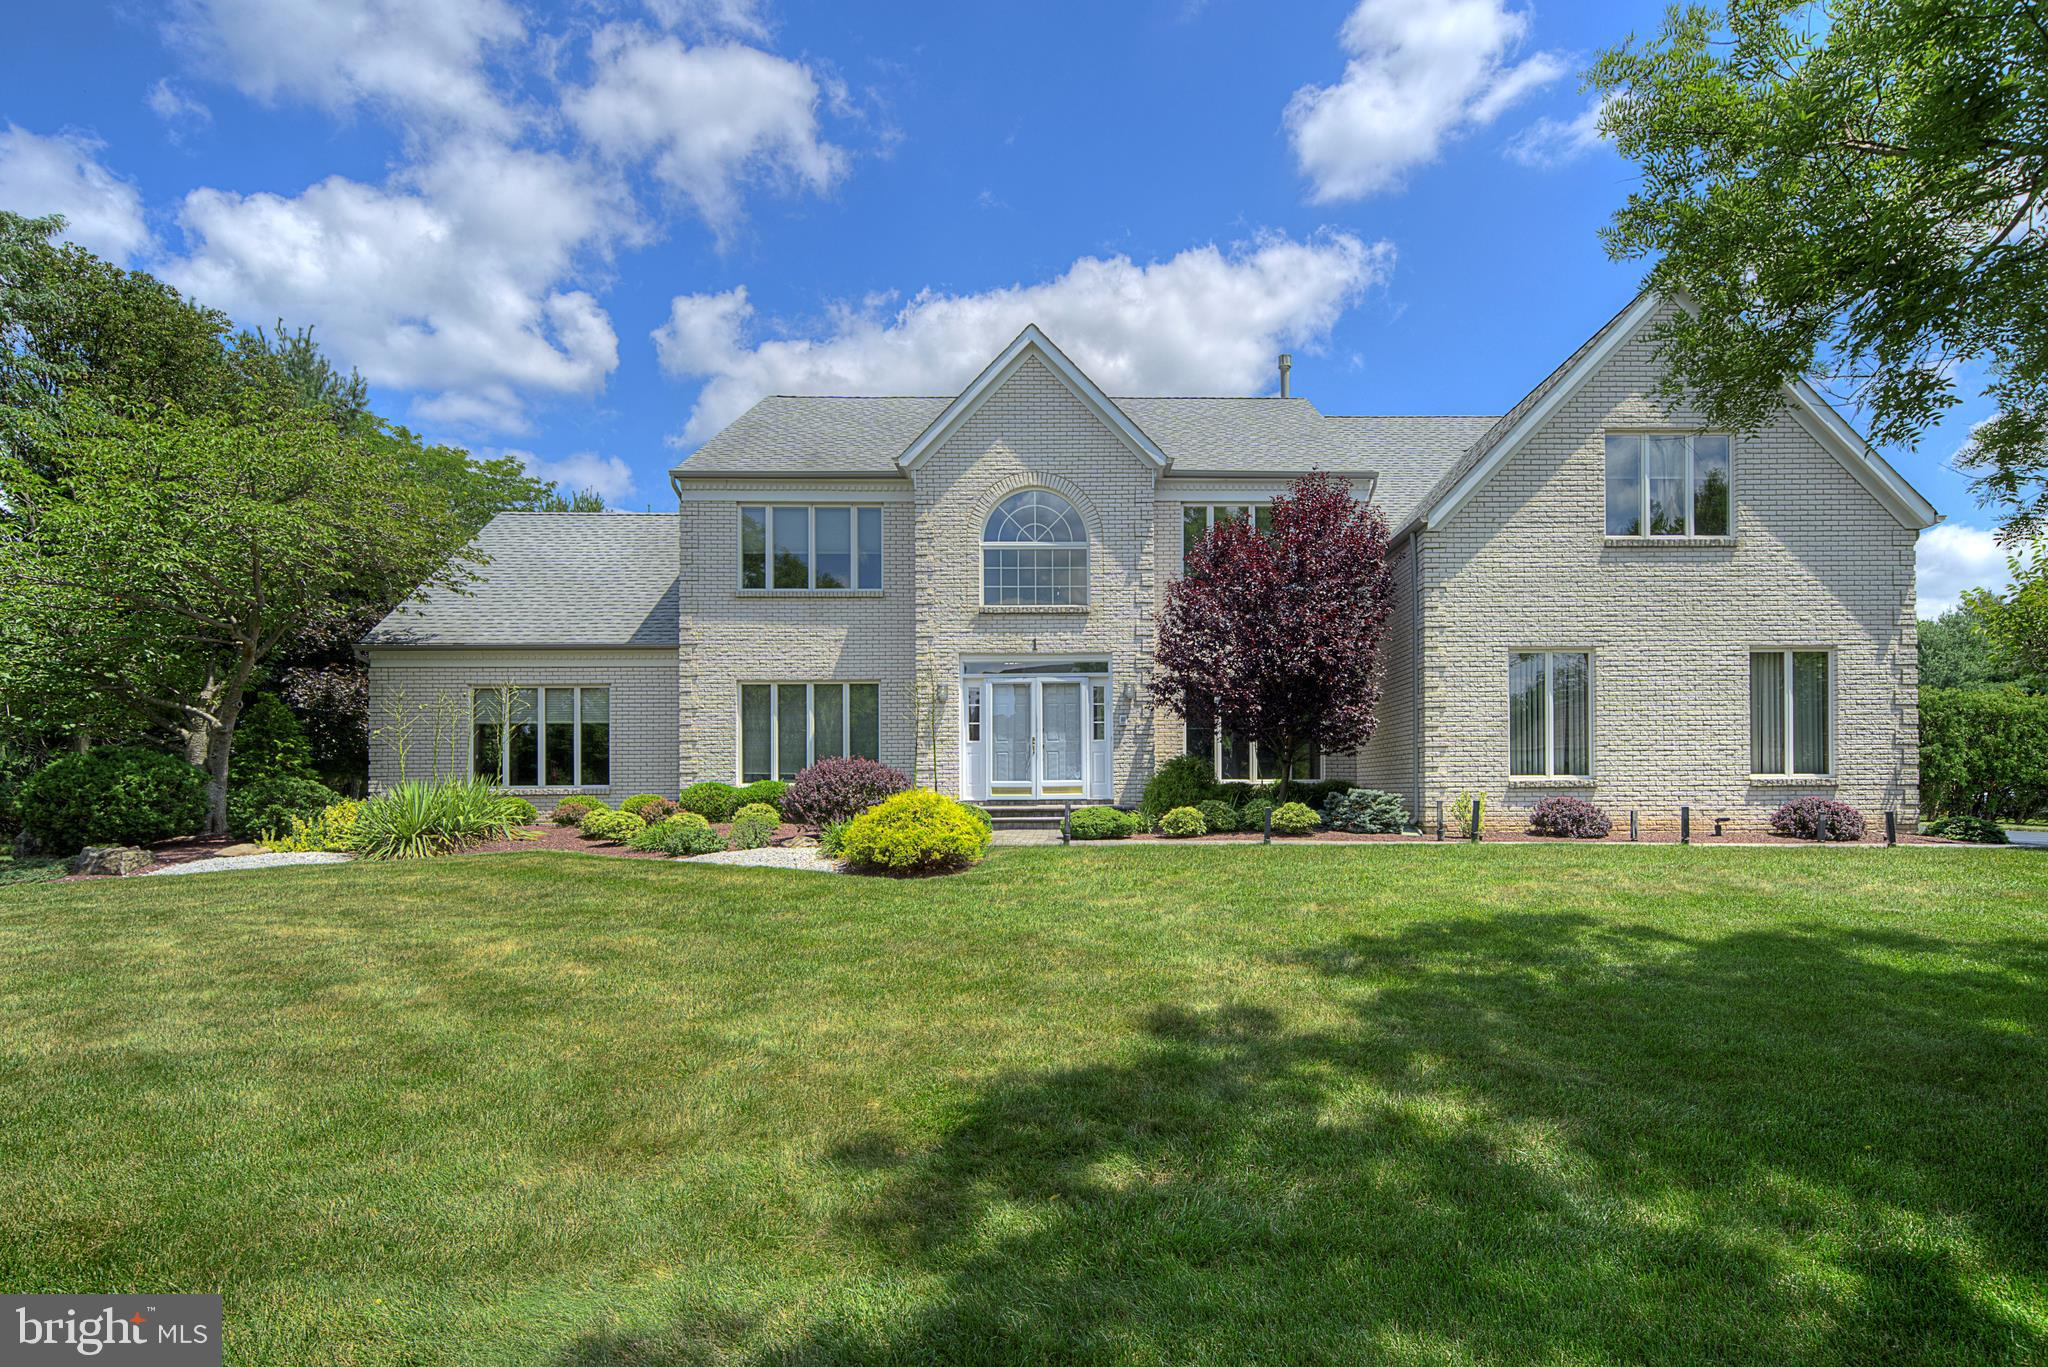 1 NORFOLK COURT, PRINCETON JUNCTION, NJ 08550